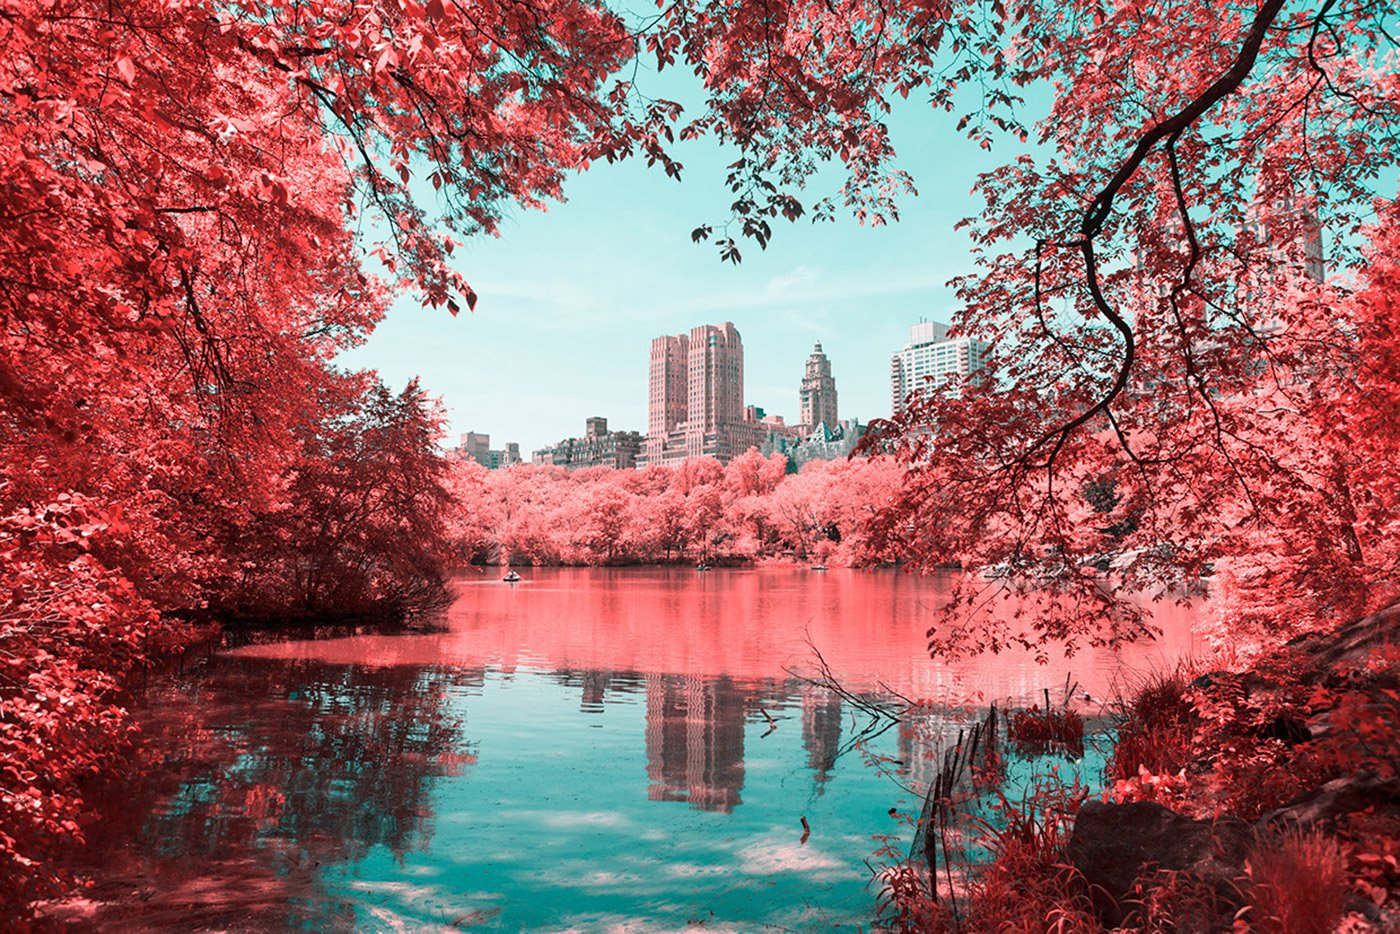 infrared_photography_nyc_central_park_paolo_pettigiani_gessato_5